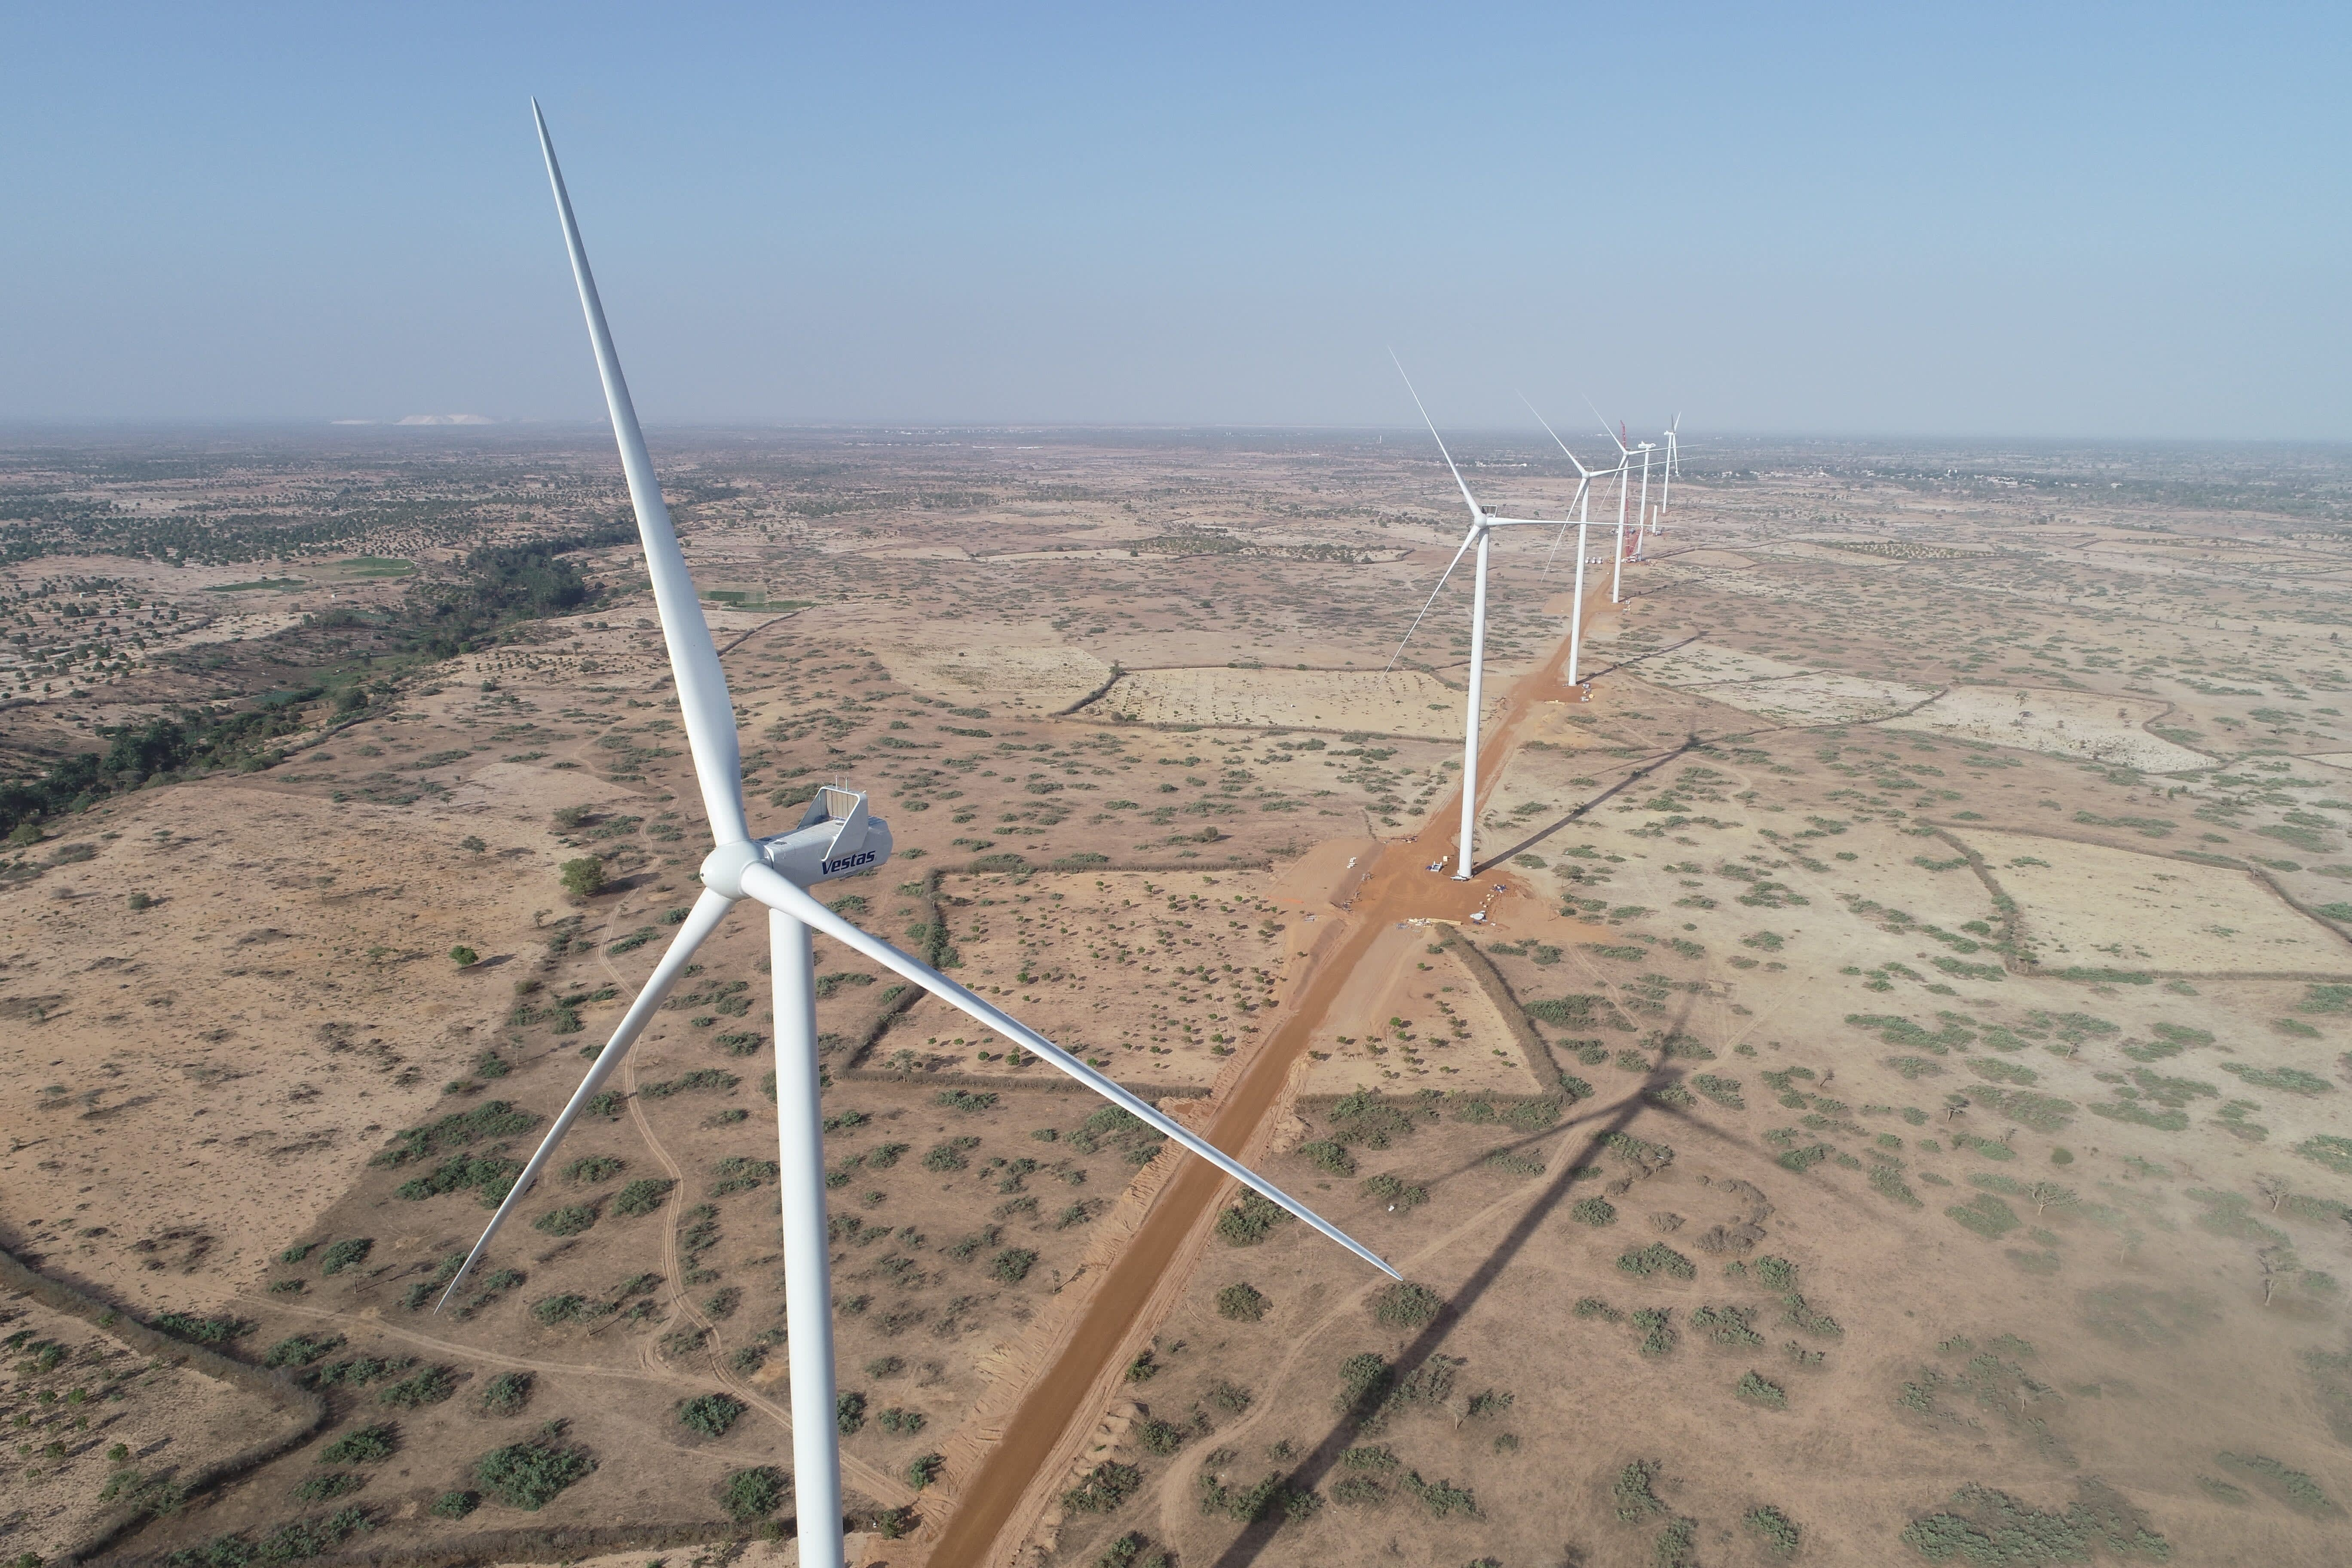 West Africa's first large-scale wind farm starts generating power